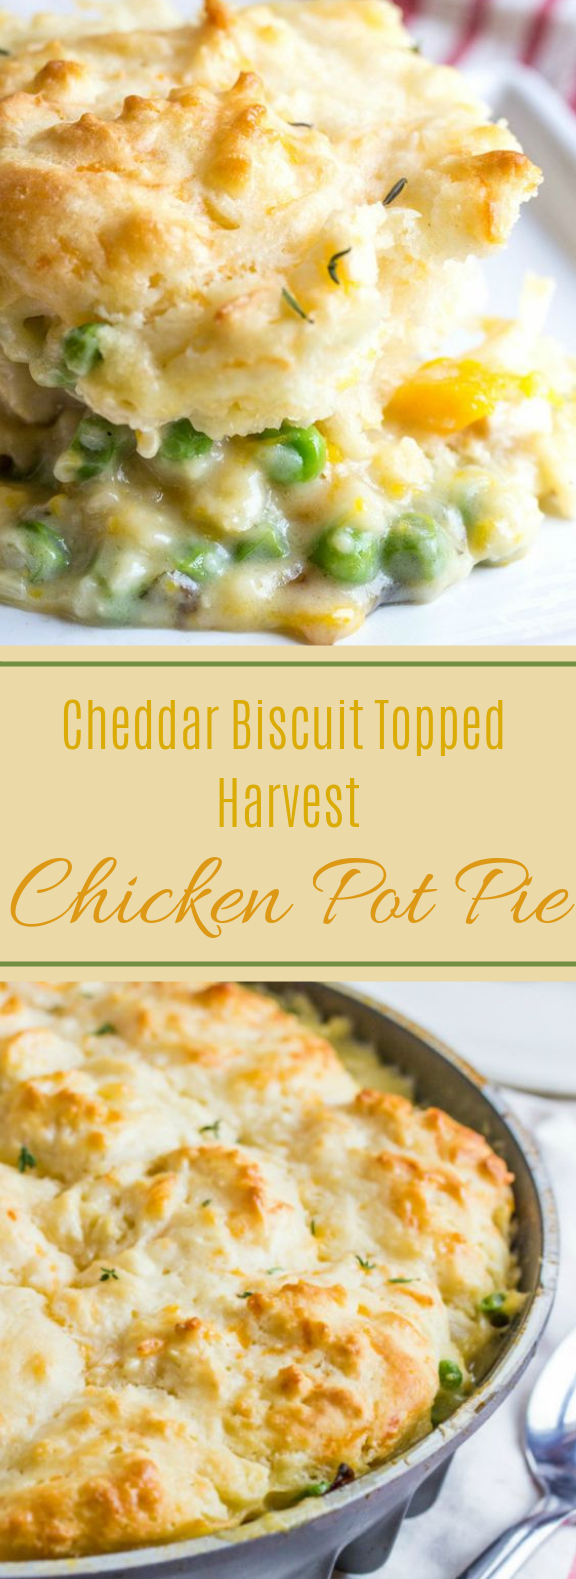 Cheddar Biscuit Topped Harvest Chicken Pot Pie #comfortfood #dinner